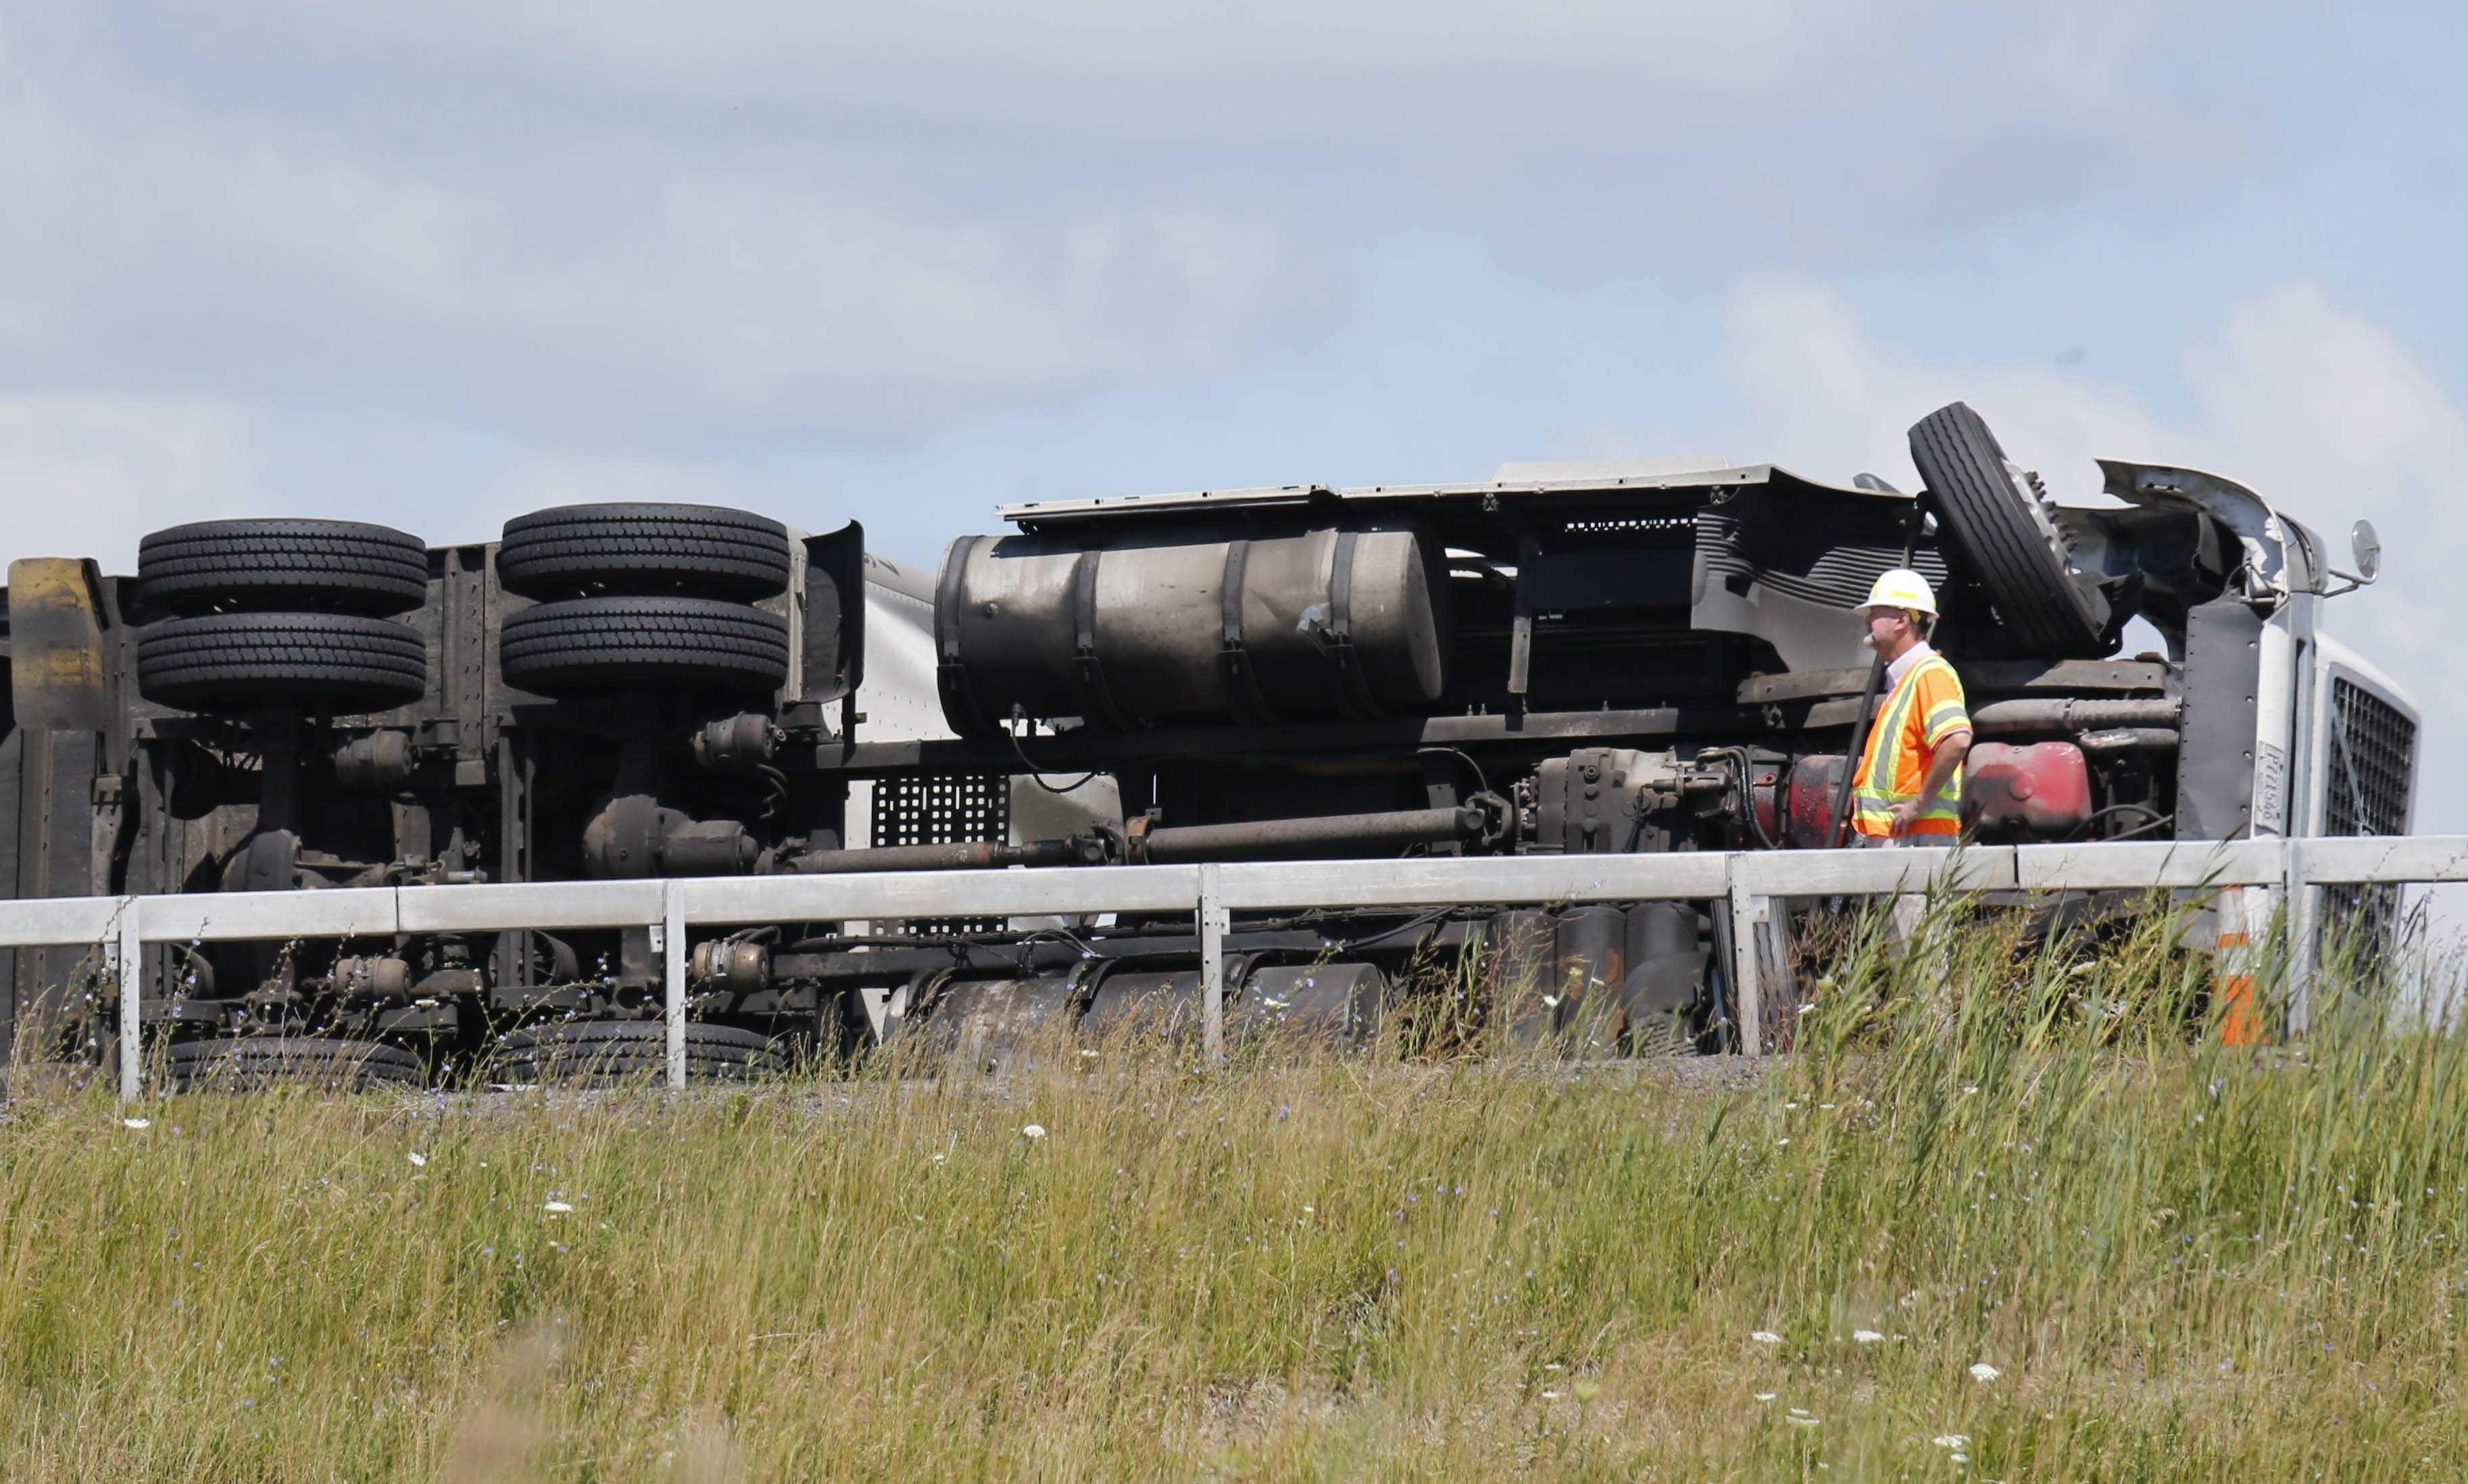 A tractor-trailer rests on its side after a rollover crash on the on-ramp to the I-190 northbound from the eastbound Thruway on July 17.